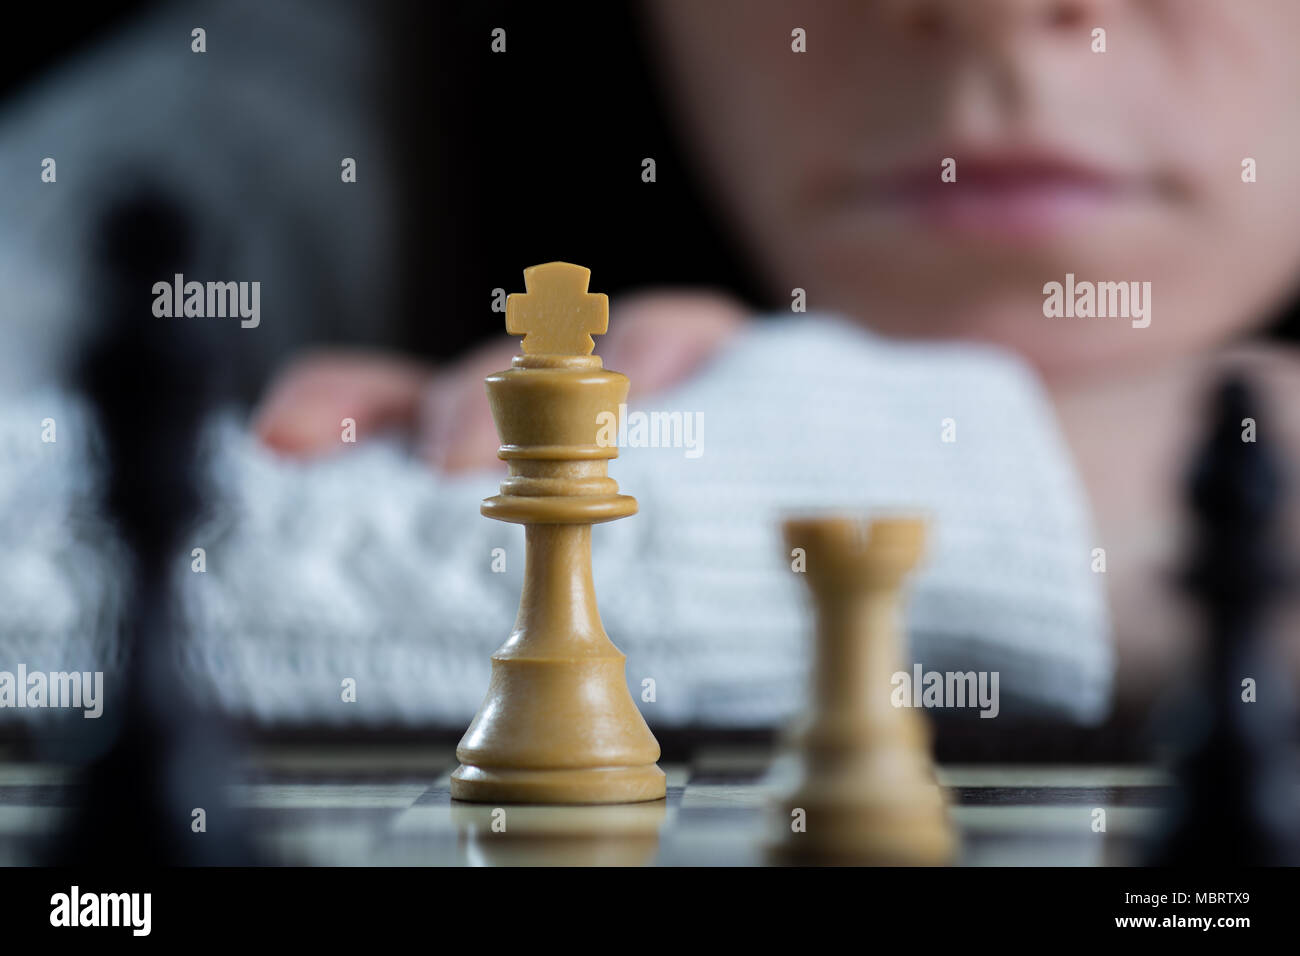 Serious Woman Playing Chess Watching the Chessboard - Stock Image